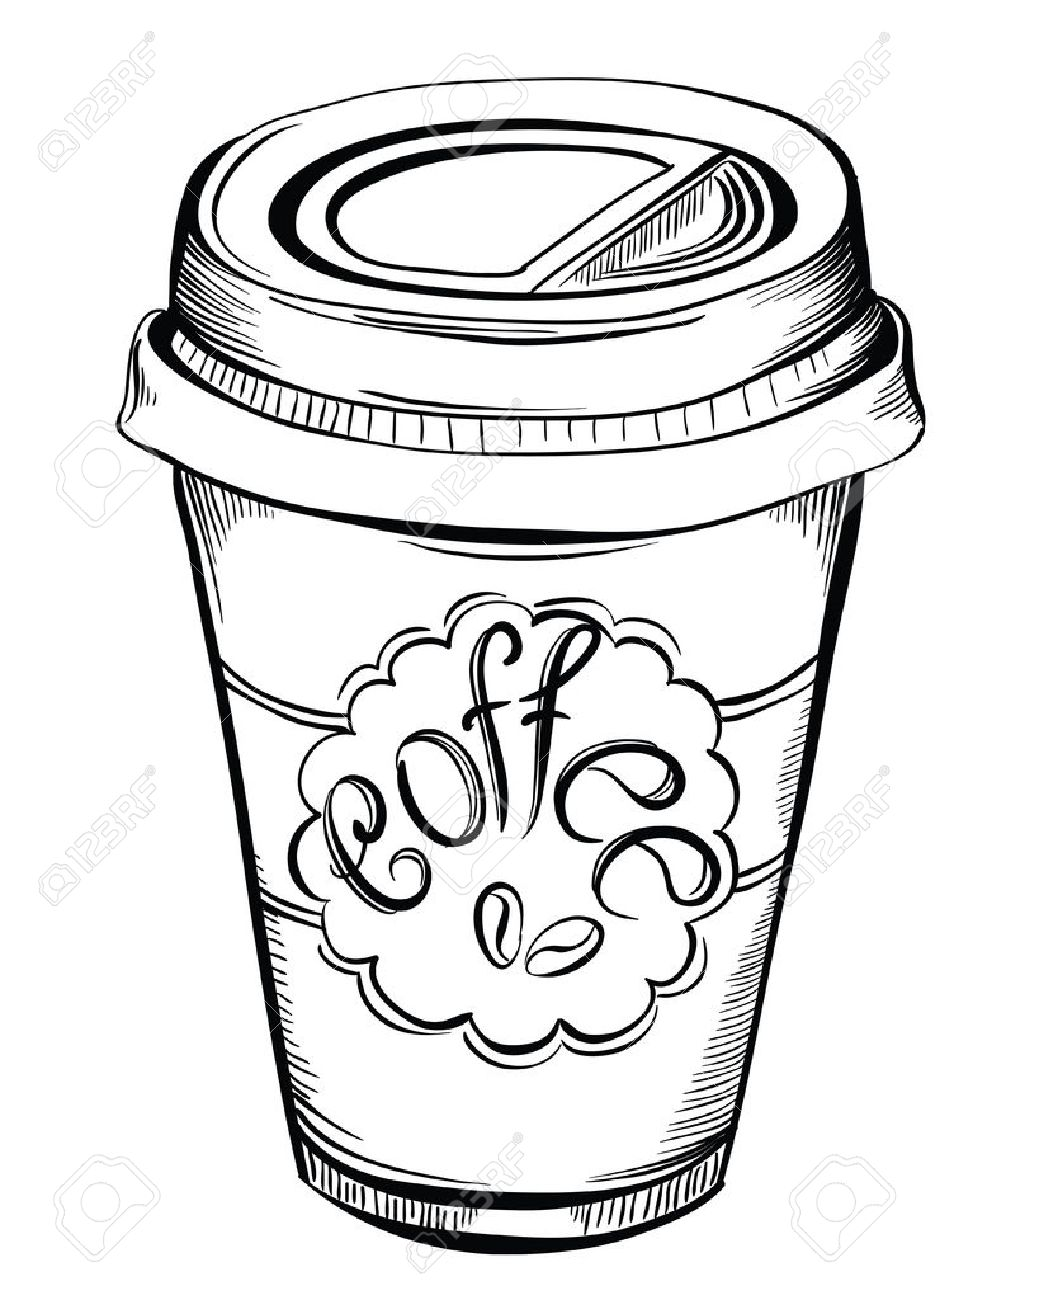 hight resolution of 1058x1300 hot coffee disposable to go cup with lids and label with coffee